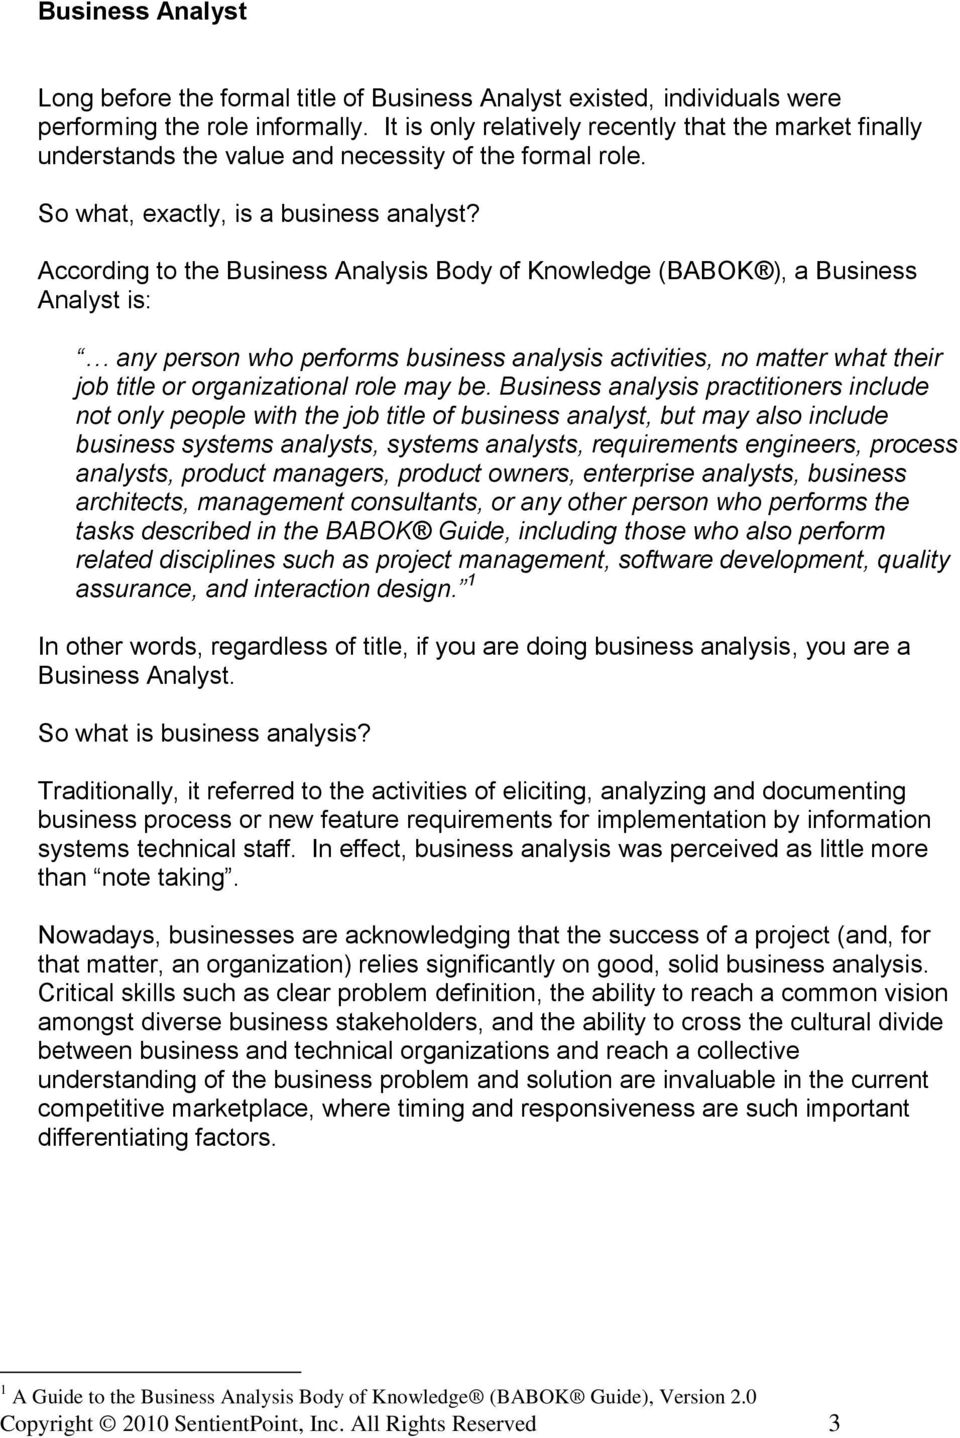 According to the Business Analysis Body of Knowledge (BABOK ), a Business Analyst is: any person who performs business analysis activities, no matter what their job title or organizational role may